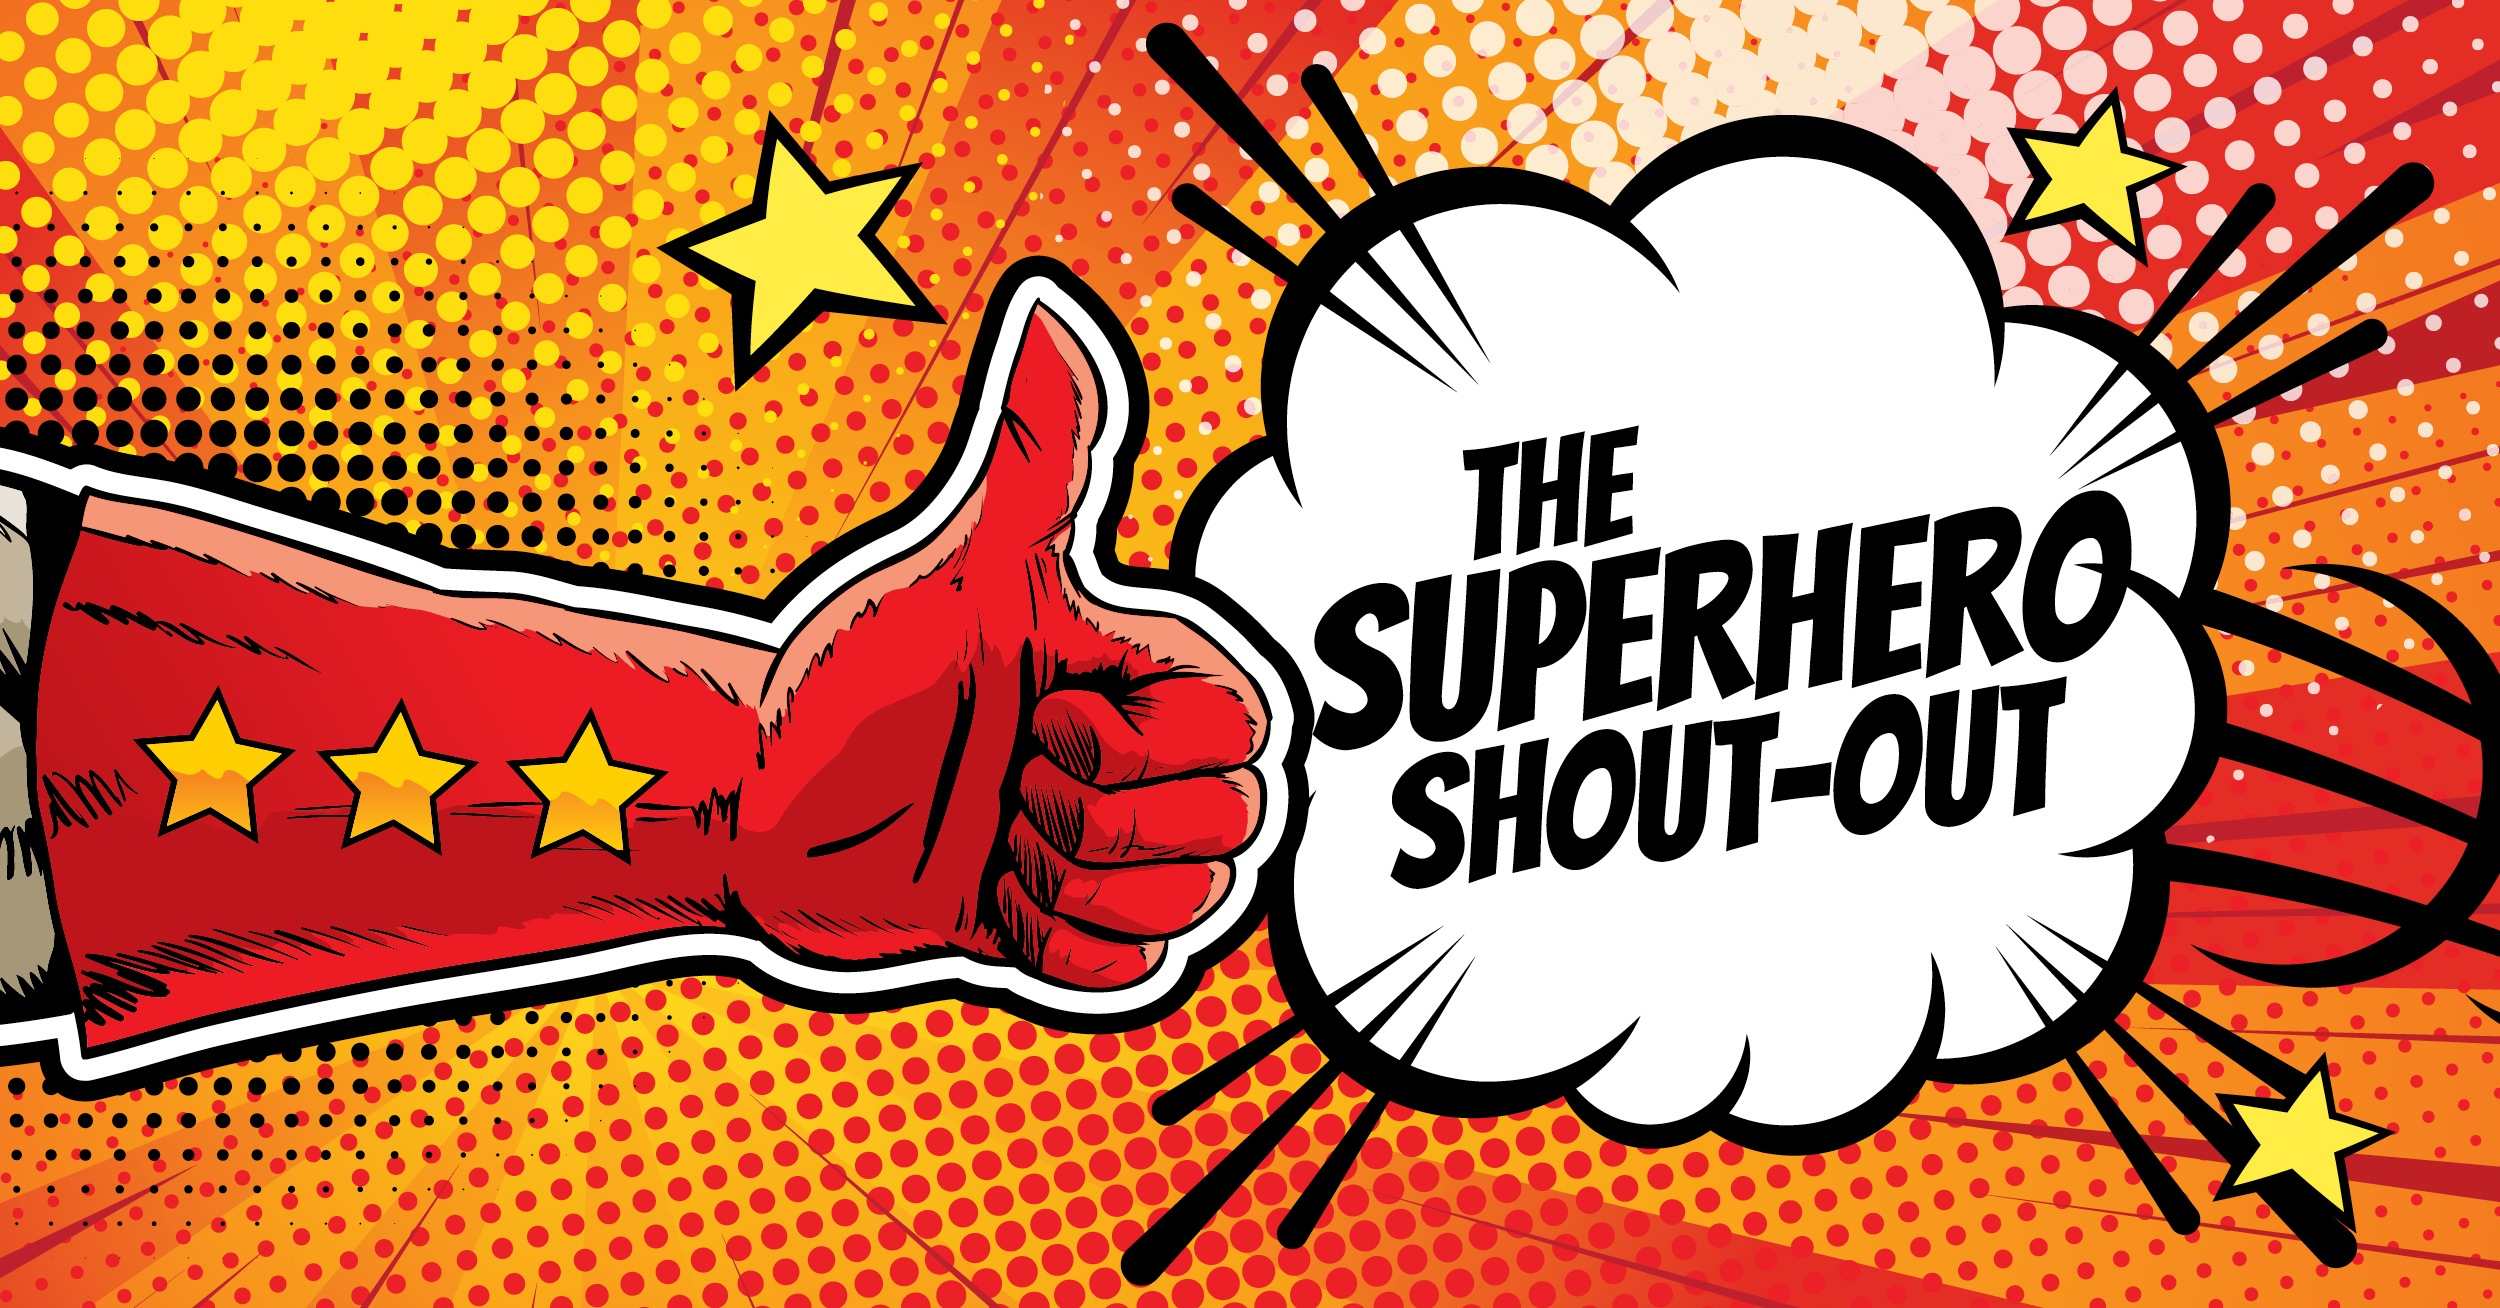 Drum Roll, Please. It's Time for a Superhero Shout-Out!